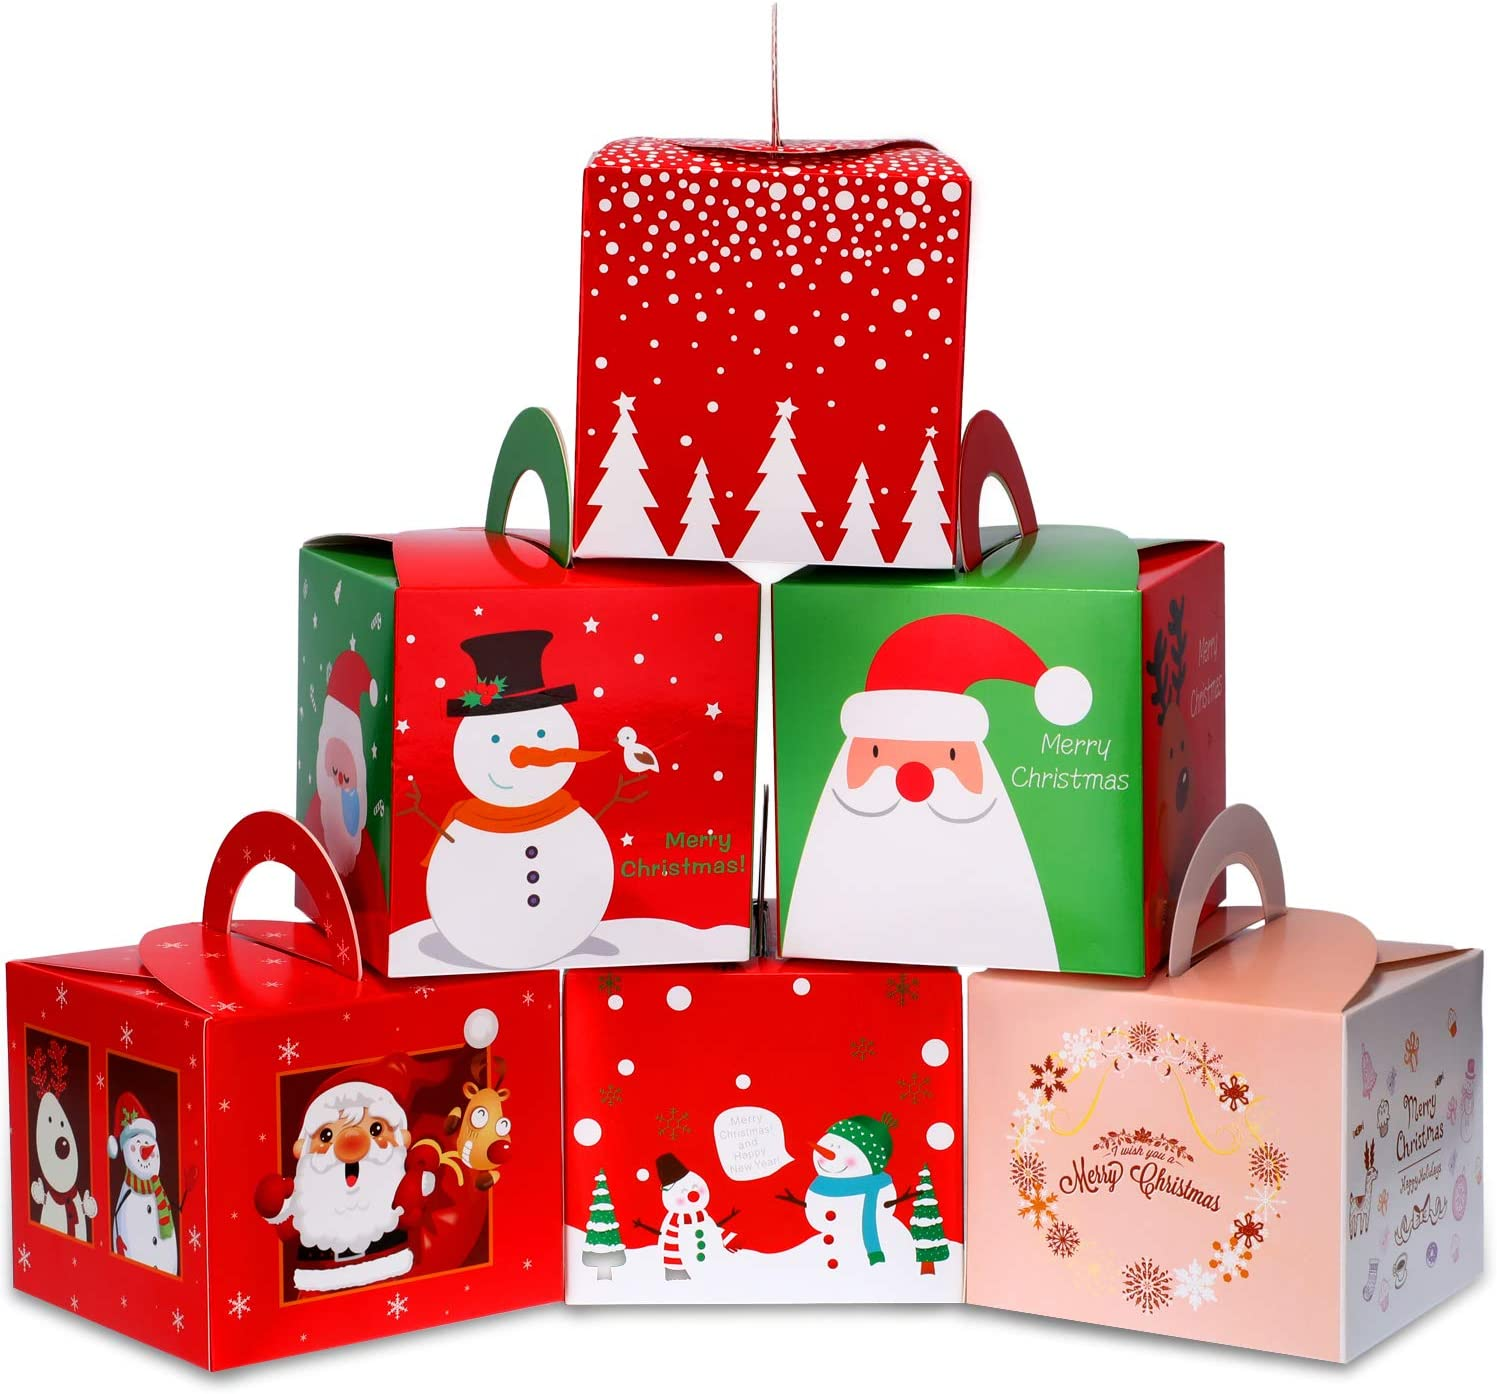 Boao 30 Pieces Christmas Candy Boxes Paper Gift Boxes with Christmas Elements Patterns for Xmas Party Supplies, 6 Styles